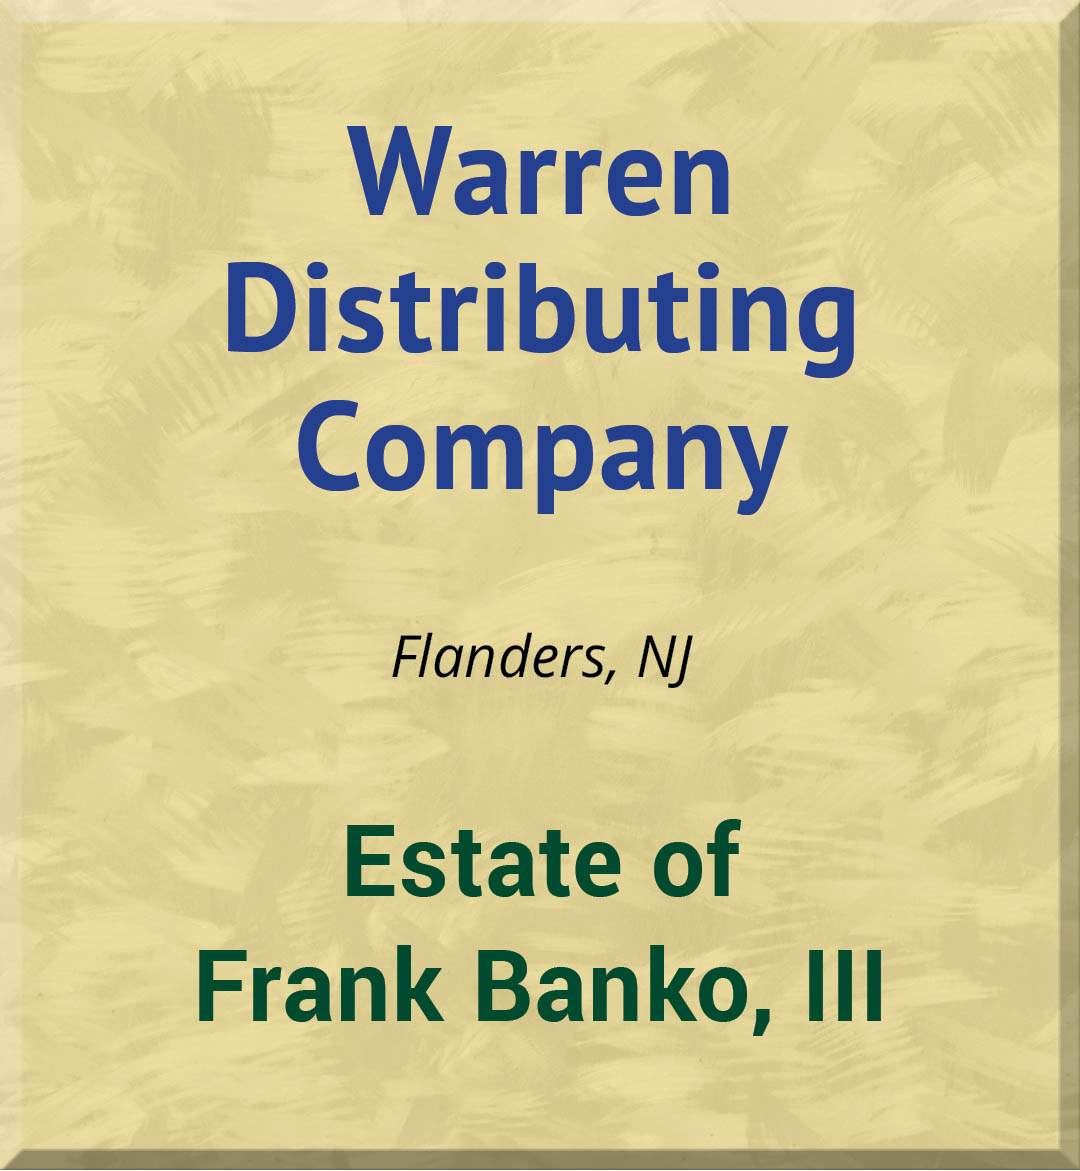 Warren Distributing Company